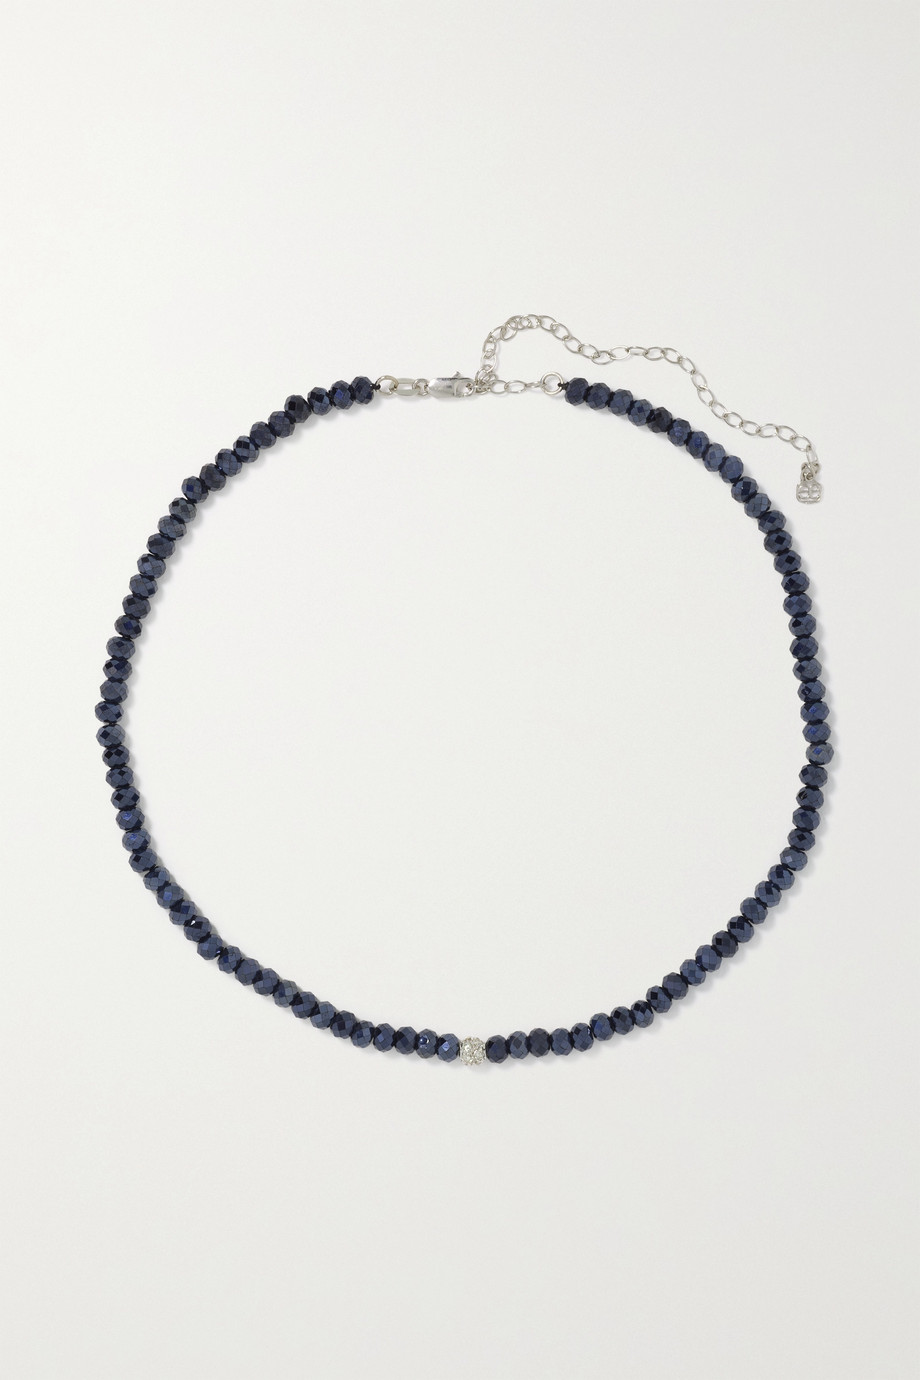 SYDNEY EVAN 14-karat white gold, spinel and diamond choker